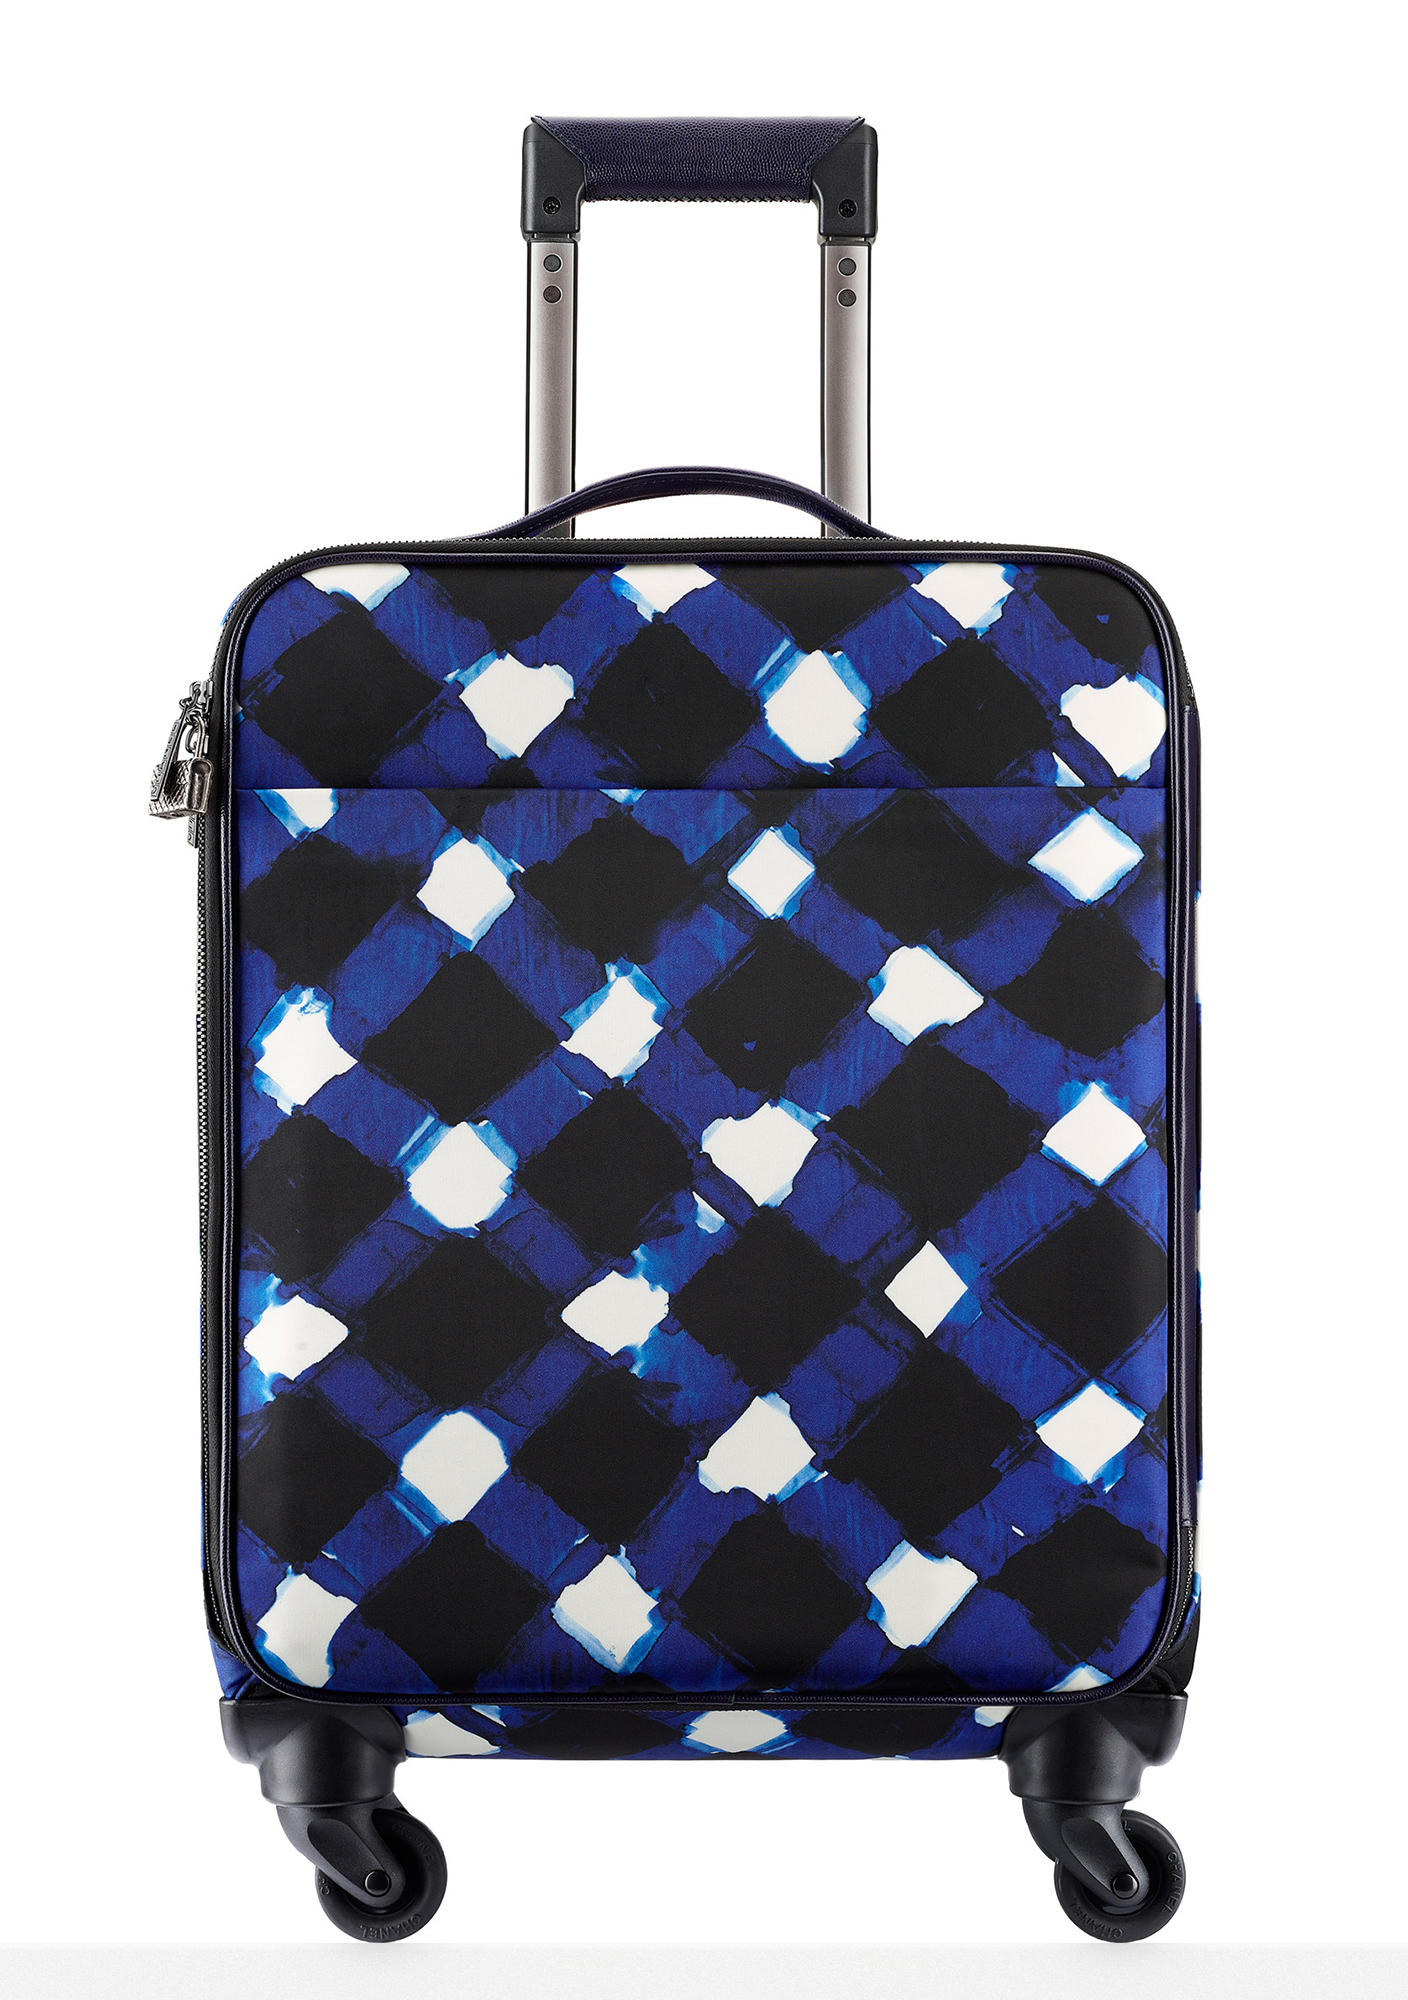 Chanel-Trolley-Rolling-Suitcase-4900